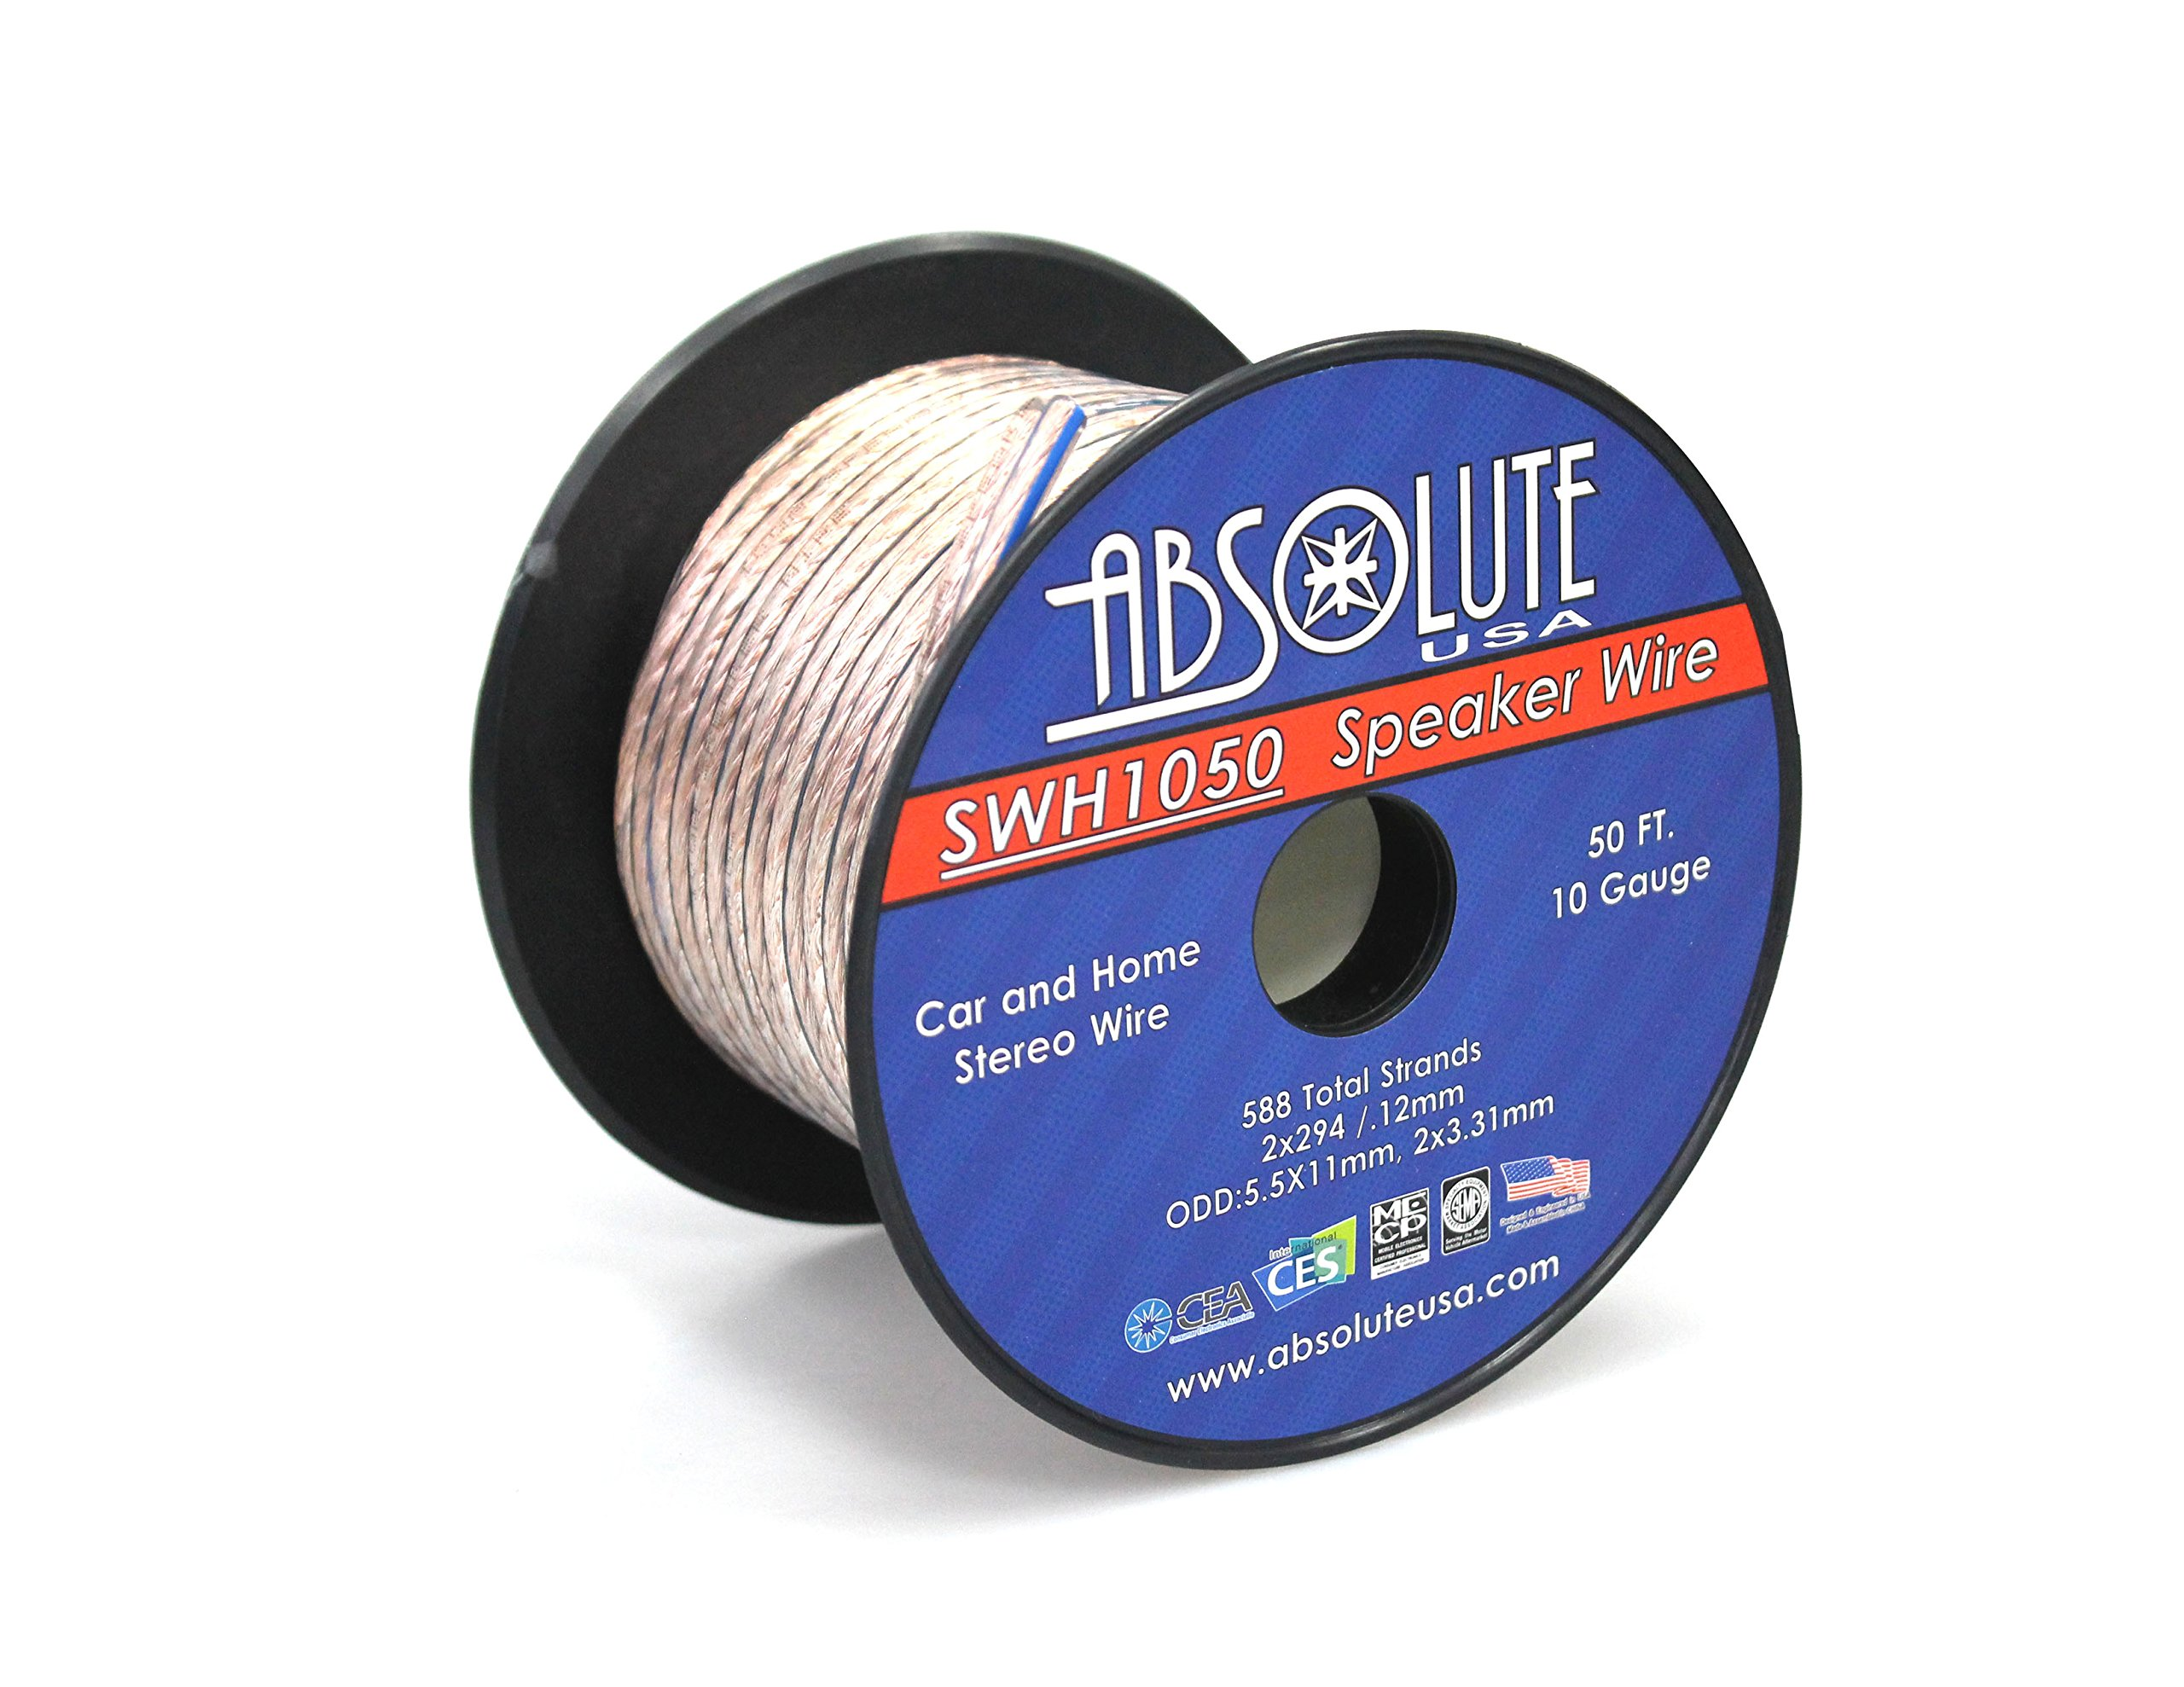 Absolute USA SWH1050 10 Gauge Car Home Audio Speaker Wire Cable Spool 50'